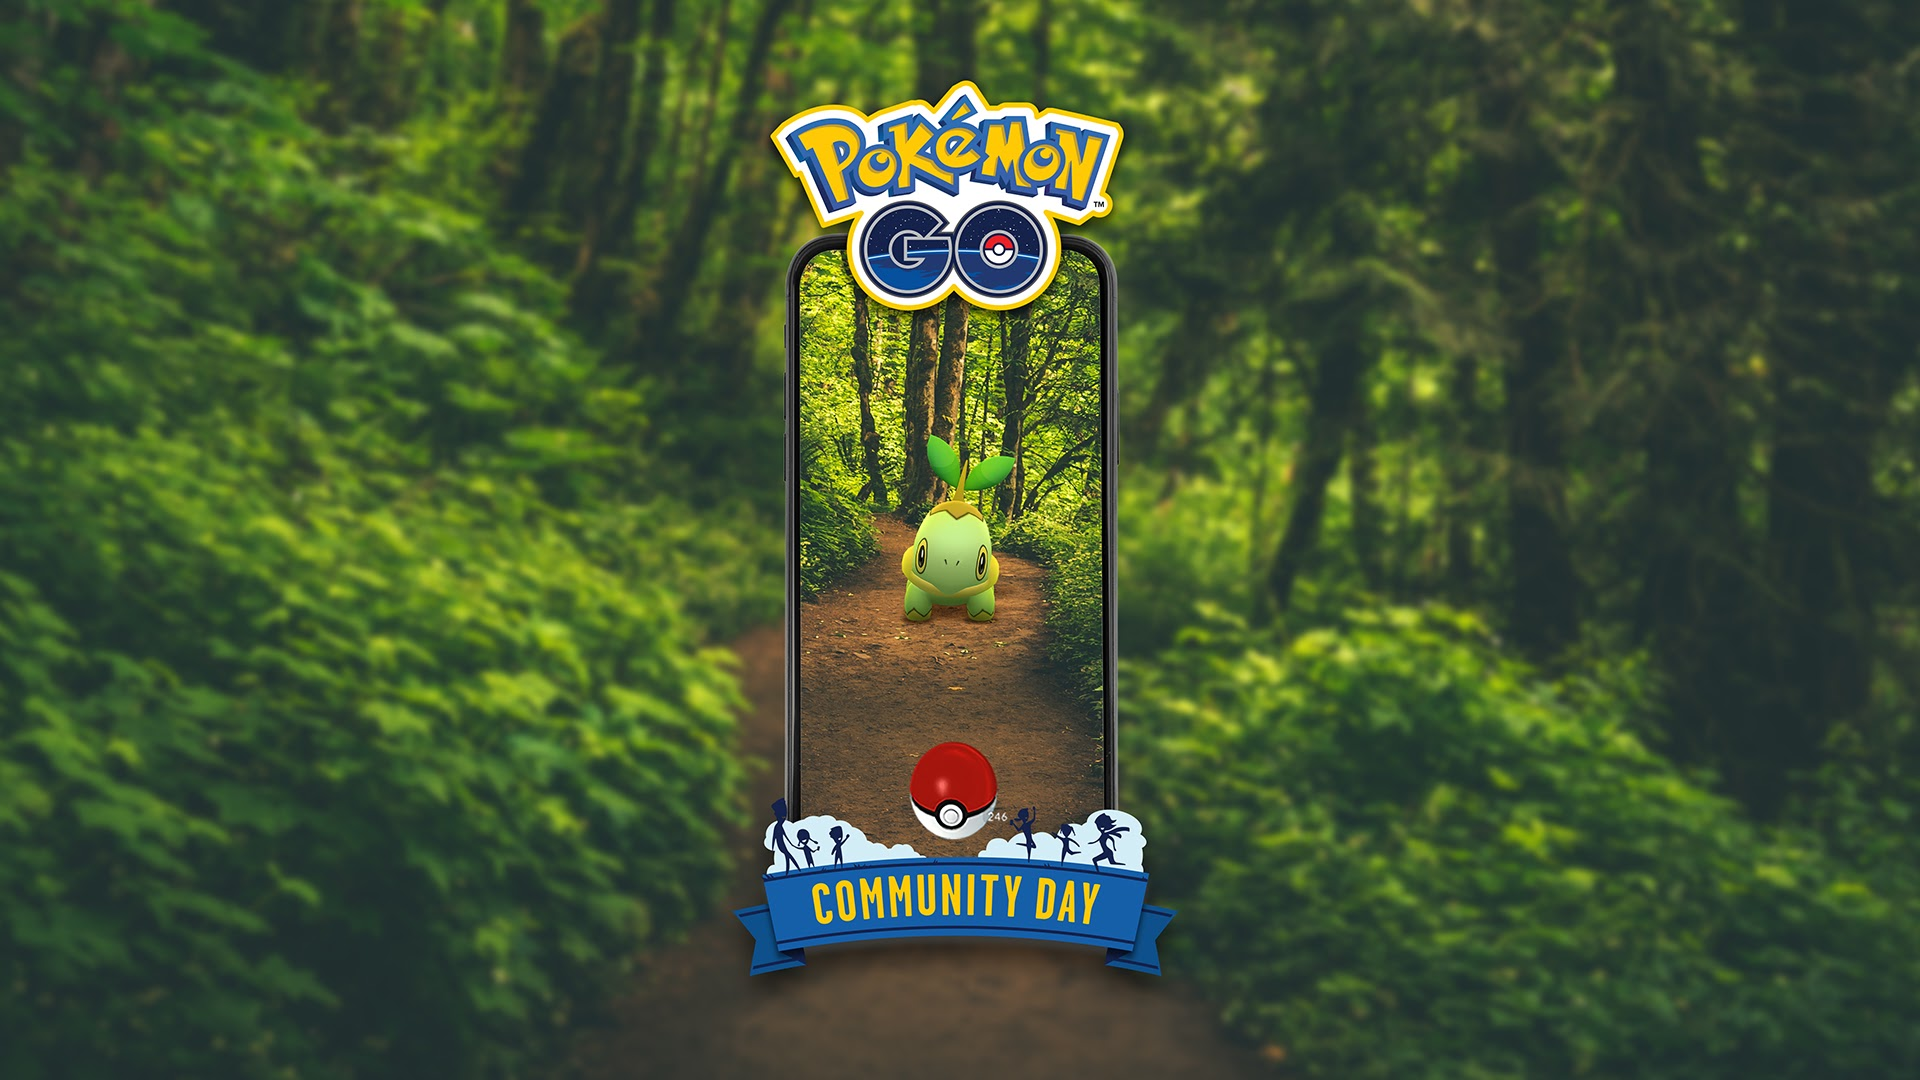 Pokémon Go Turtwig Community Day guide: best movesets and start time